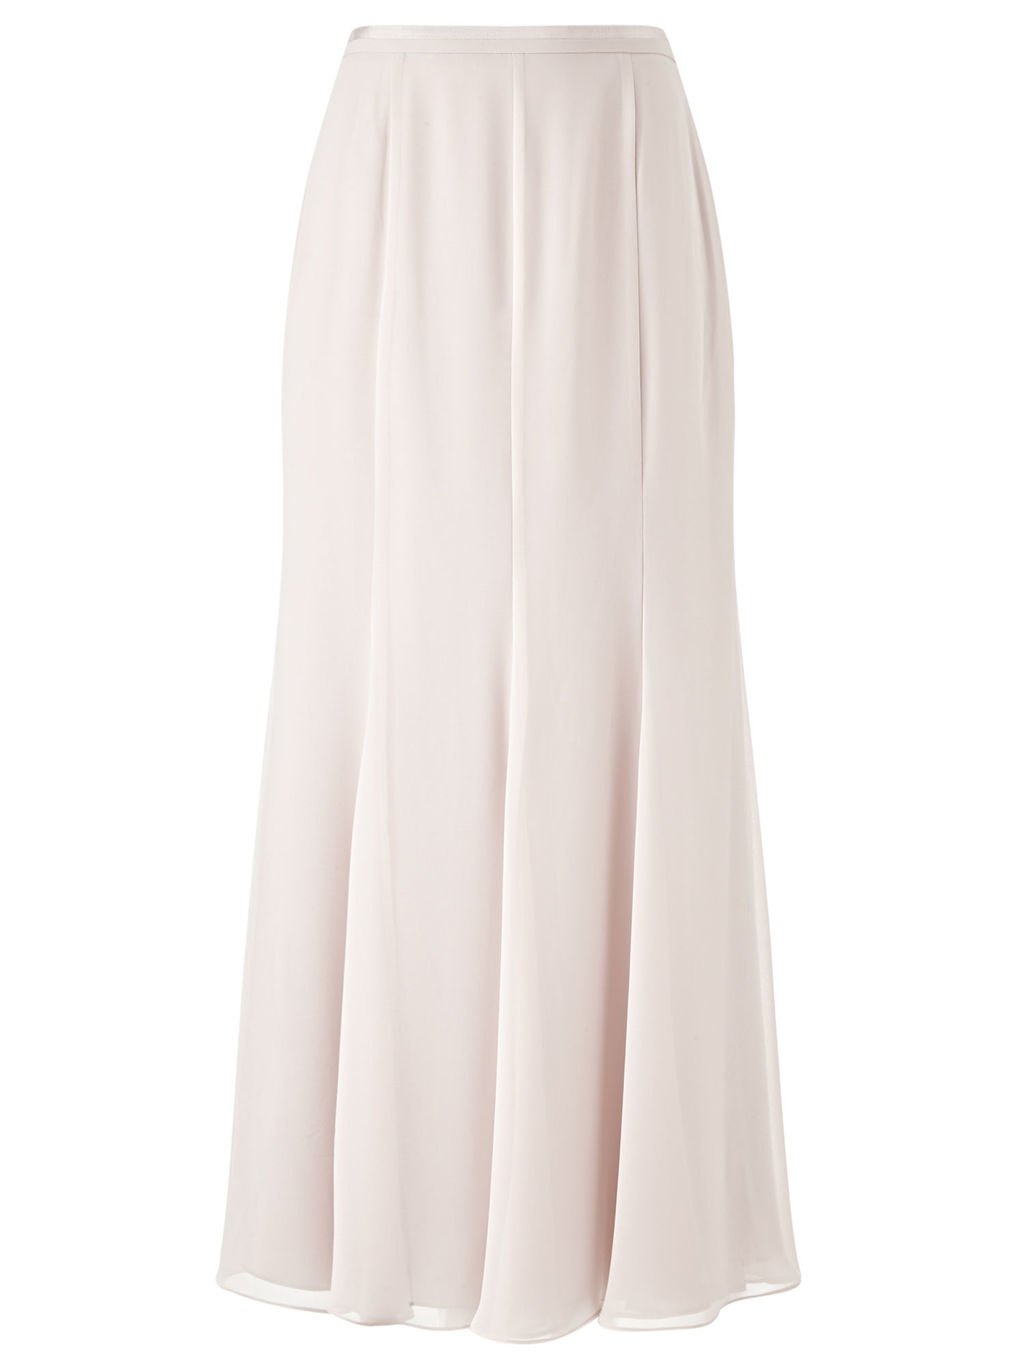 Gloria Grosgrain Maxi Skirt, Neutral - pattern: plain; length: ankle length; waist: high rise; fit: bias; predominant colour: ivory/cream; style: maxi skirt; fibres: polyester/polyamide - 100%; occasions: occasion; hip detail: soft pleats at hip/draping at hip/flared at hip; texture group: sheer fabrics/chiffon/organza etc.; pattern type: fabric; season: s/s 2016; wardrobe: event